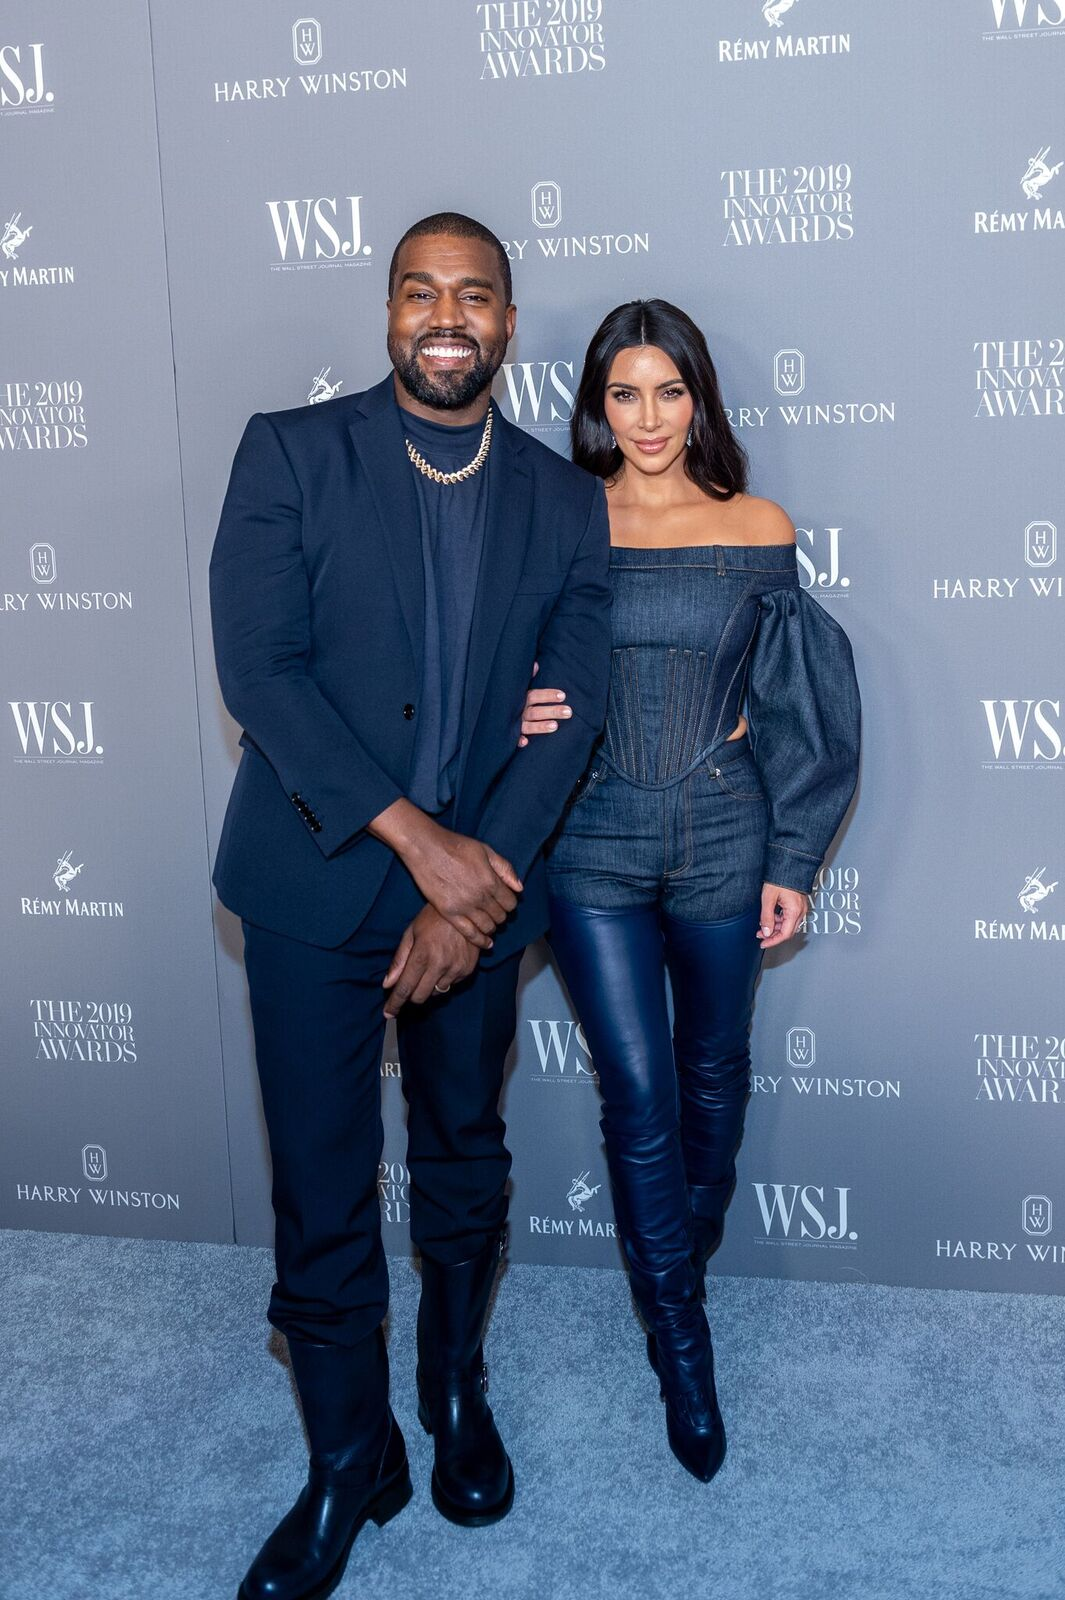 Kanye West and Kim Kardashian attend the WSJ Mag 2019 Innovator Awards at The Museum of Modern Art on November 06, 2019 in New York City. | Photo: Getty Images